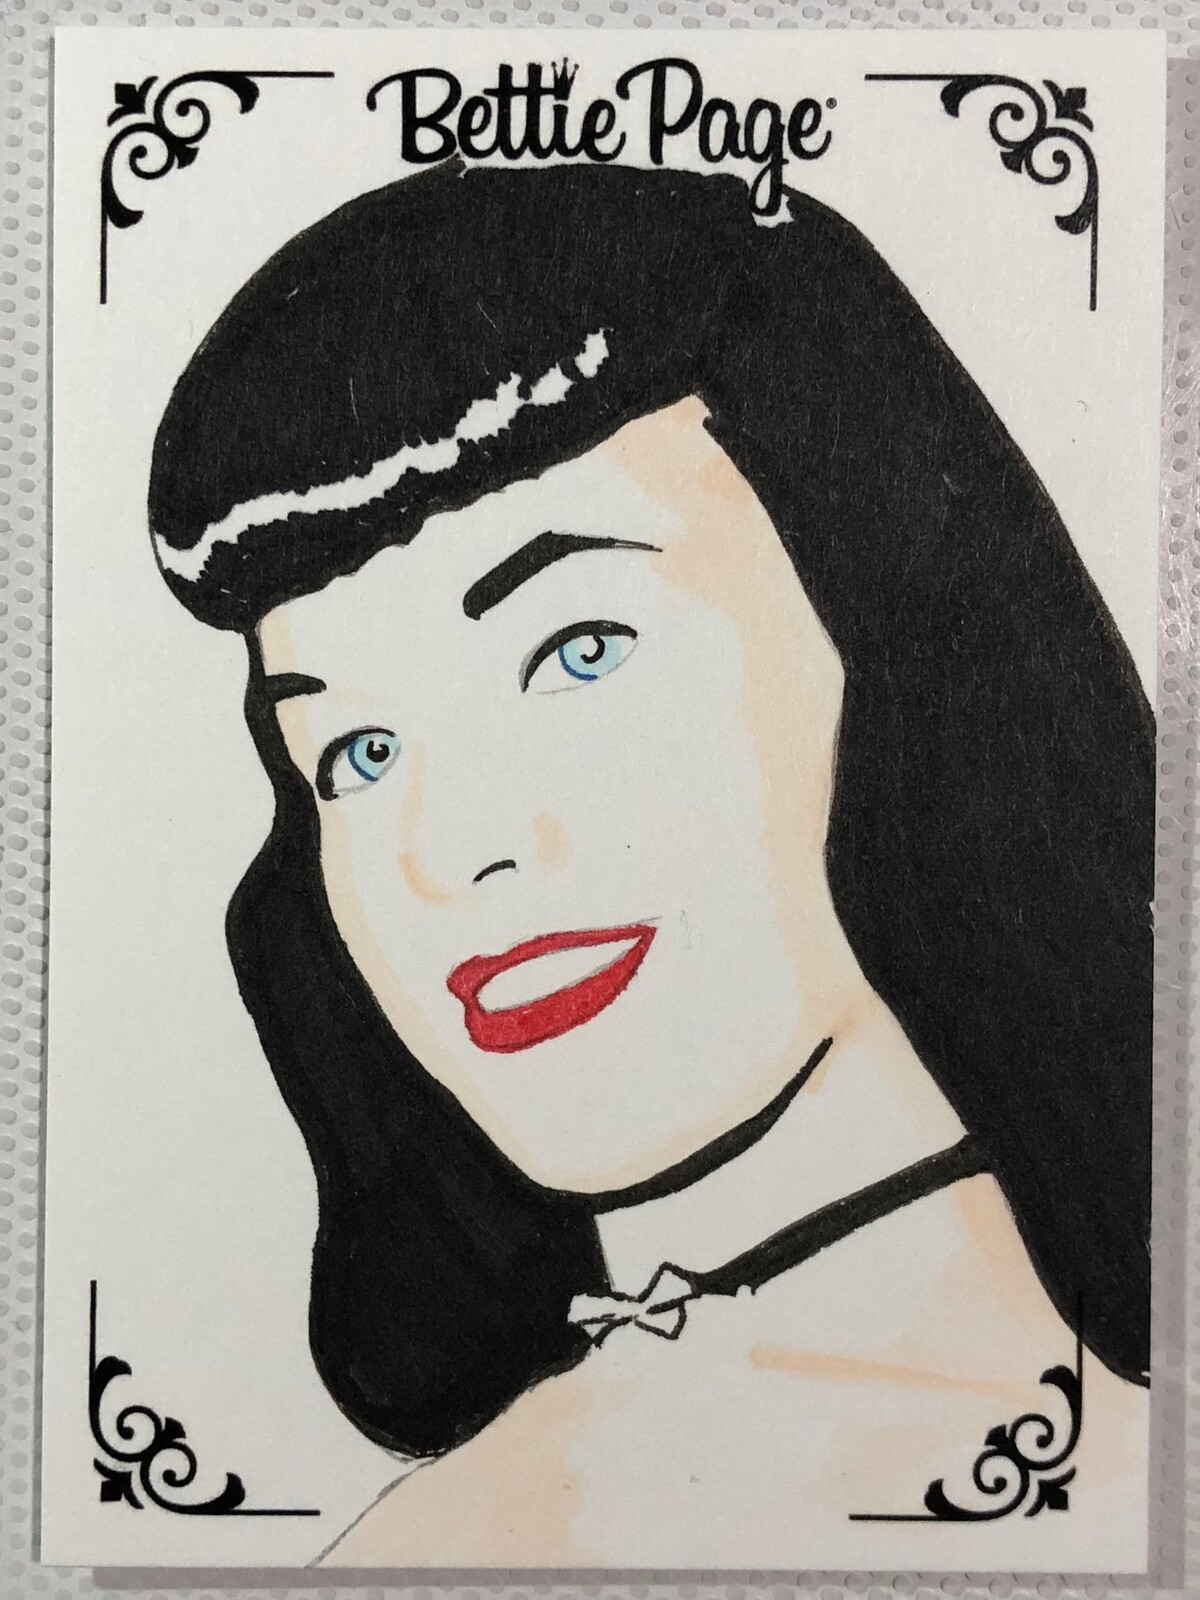 Bettie Page Art cards created for Dynamite Entertainments officially licensed Bettie Page trading card set